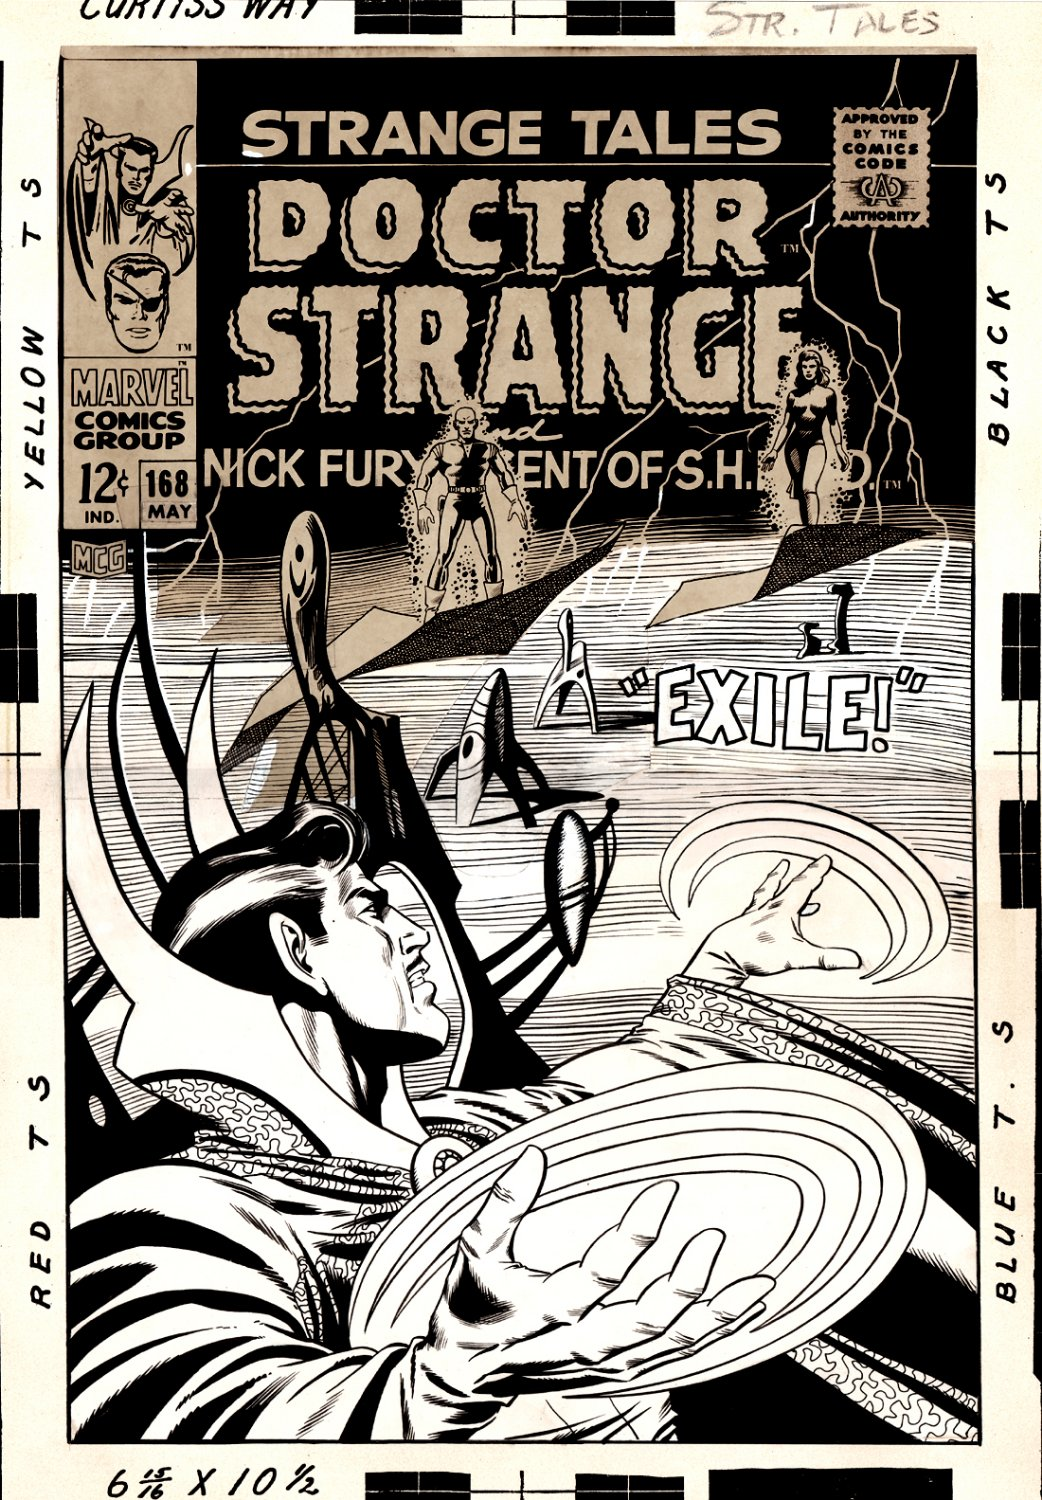 Strange Tales #168 Last Issue Large Art Cover (Dr. Strange #0) 1967